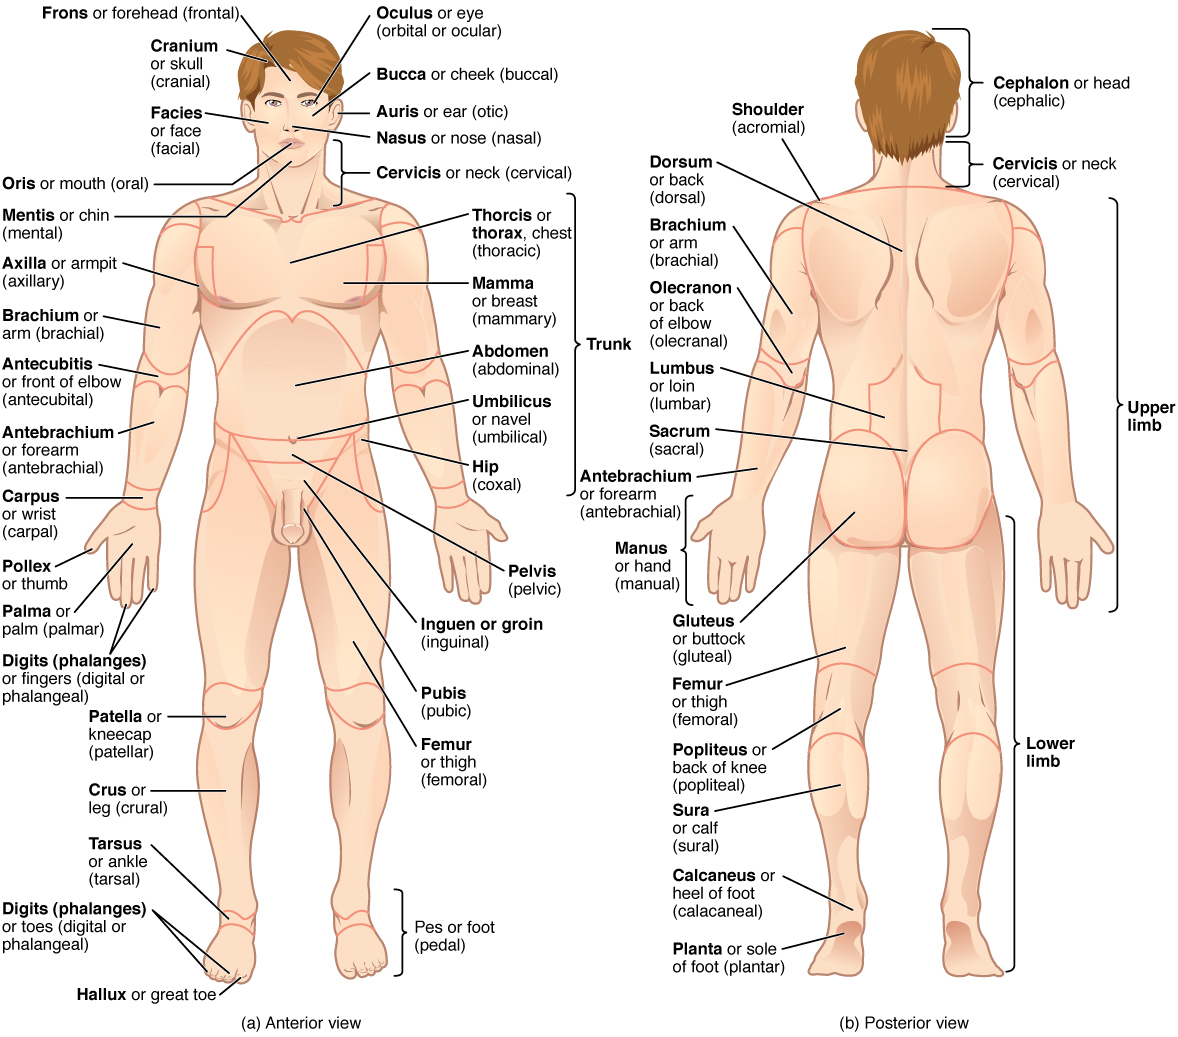 List Of Human Anatomical Regions